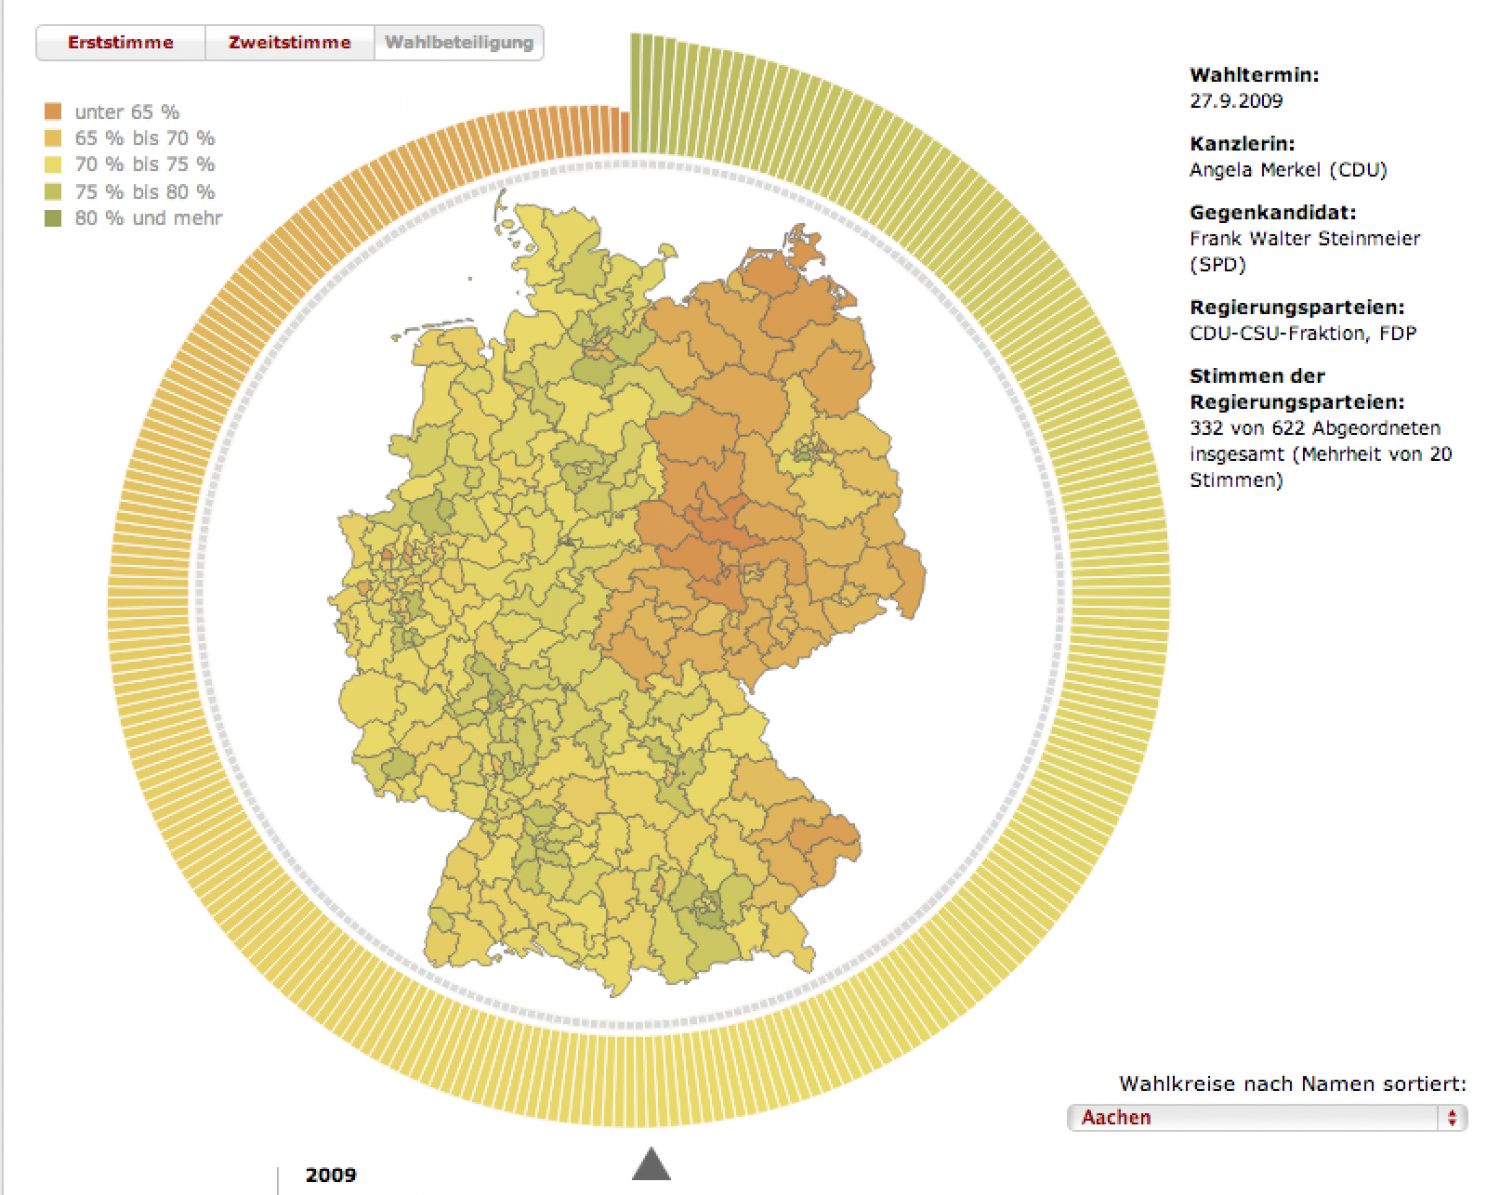 German Election Results 1949 - 2009 Infographic